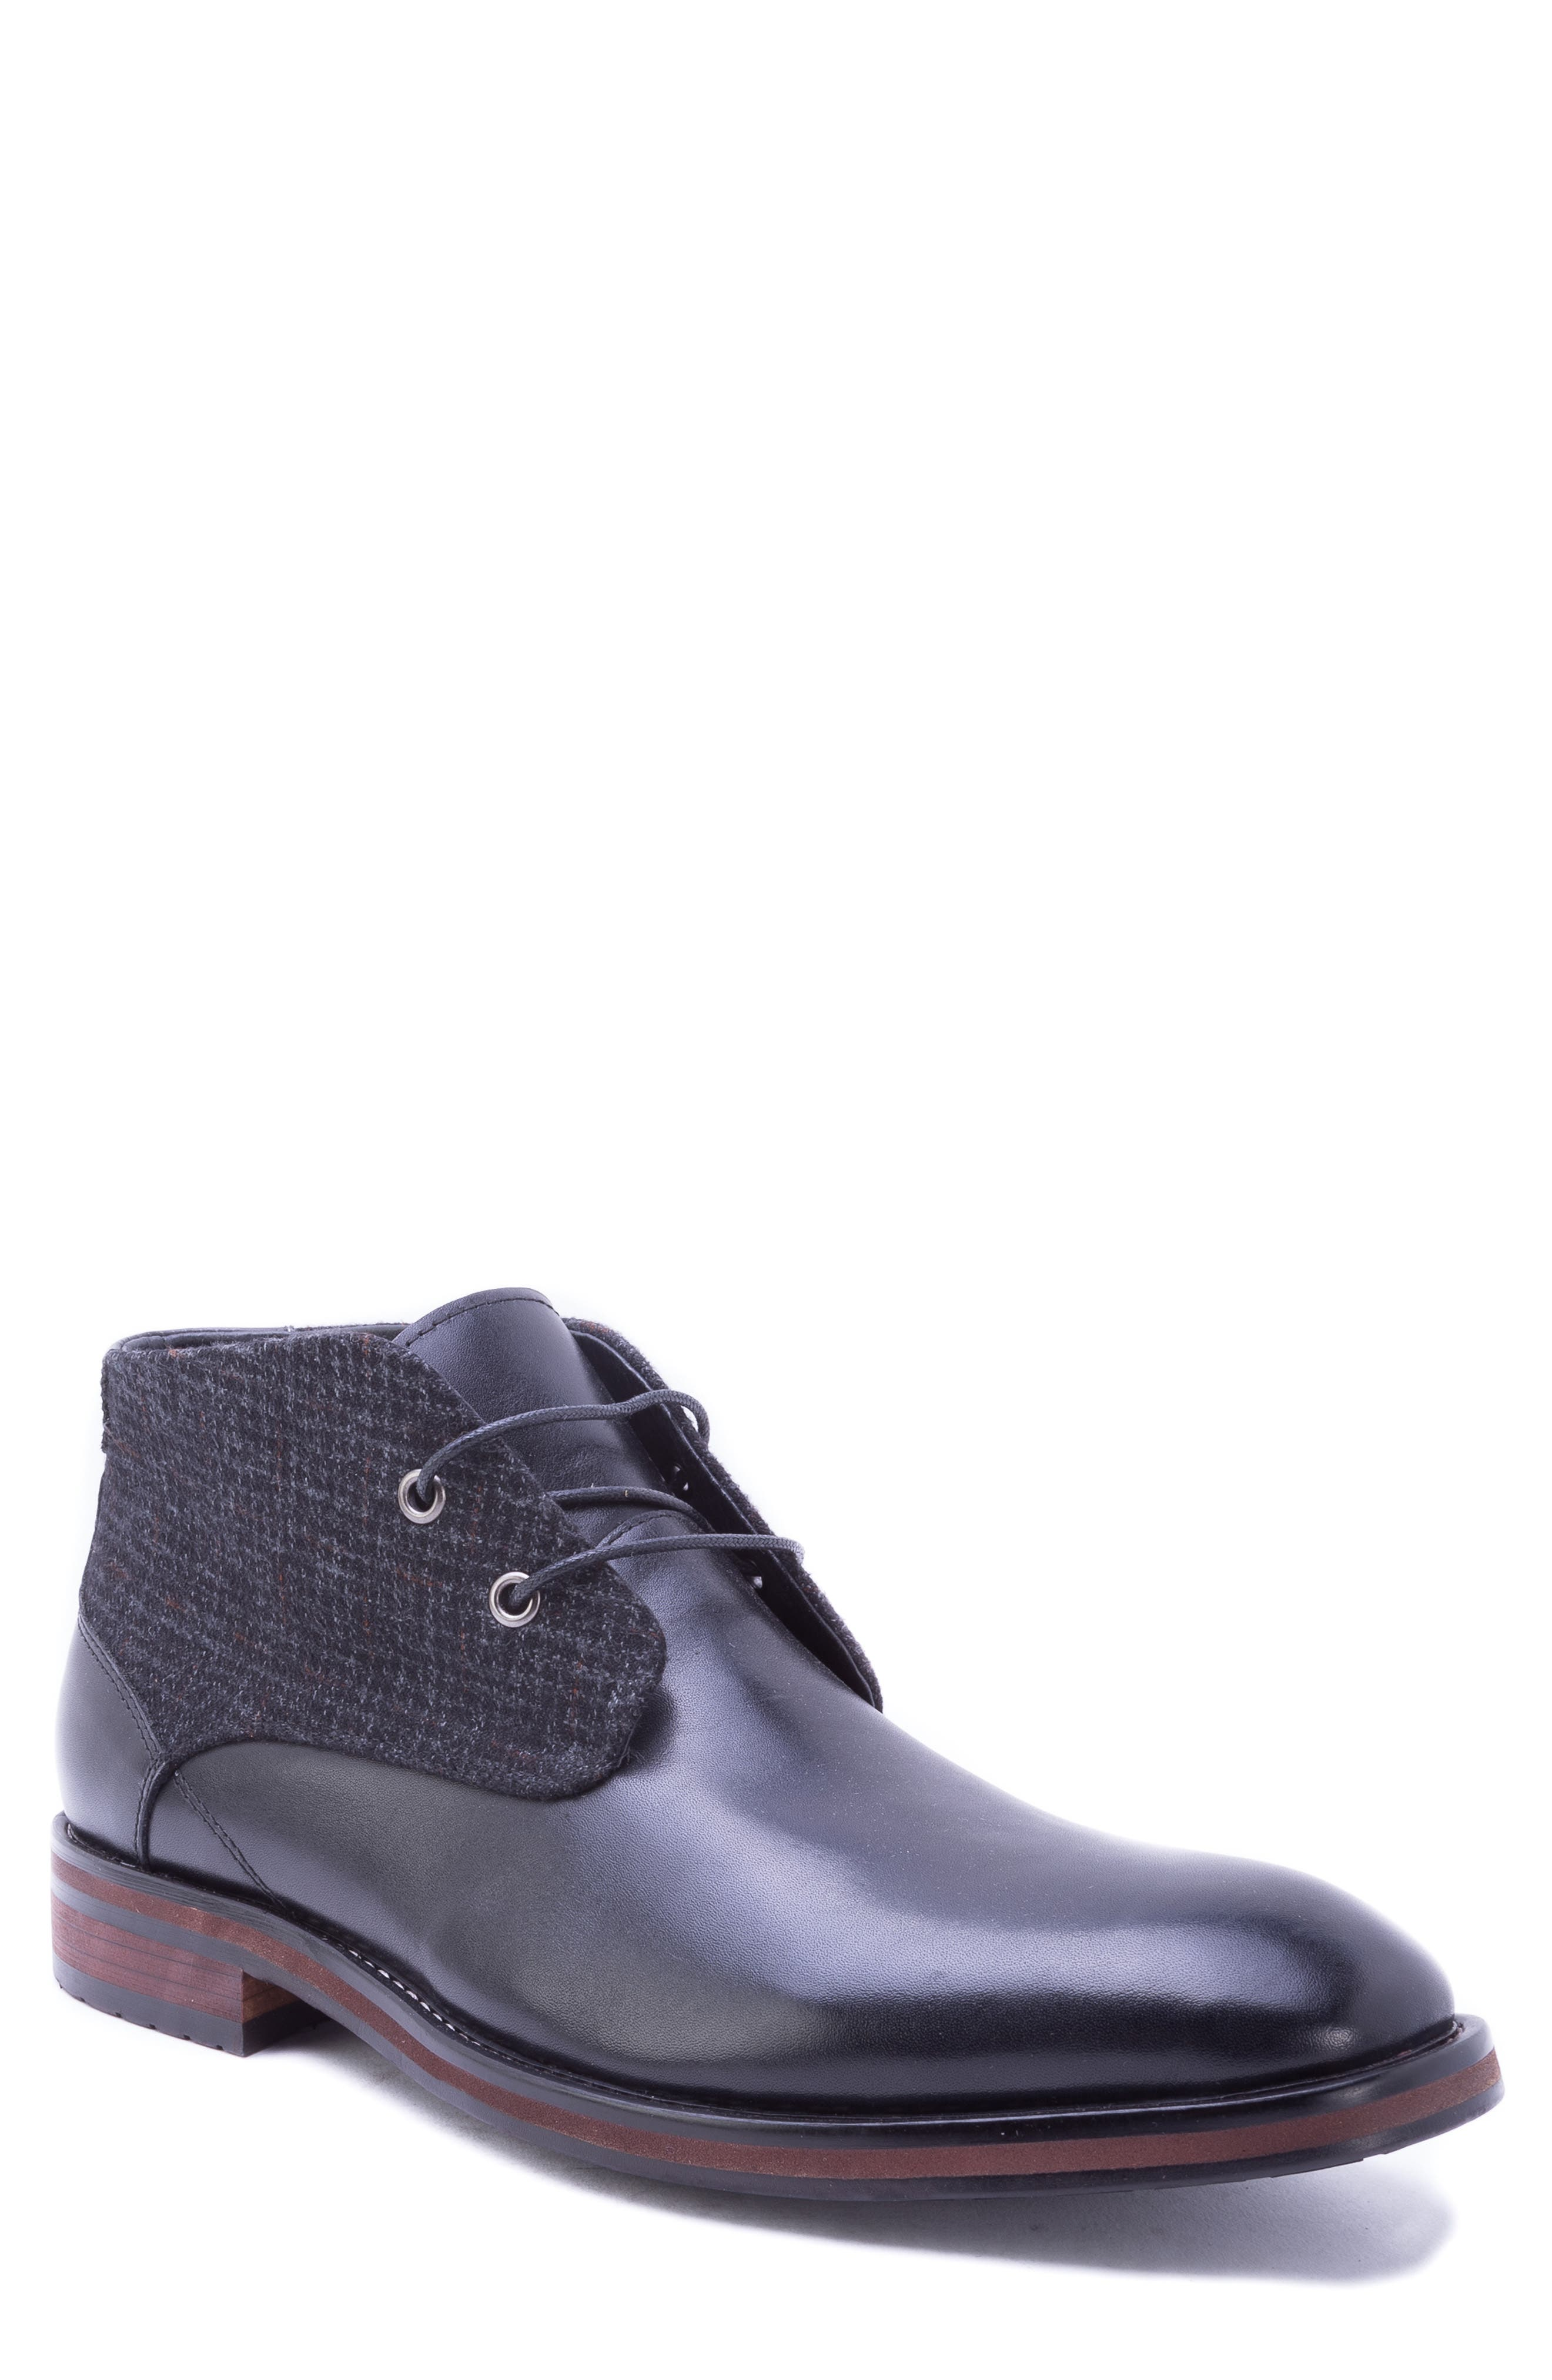 Nebot Chukka Boot,                         Main,                         color, BLACK LEATHER/ FABRIC